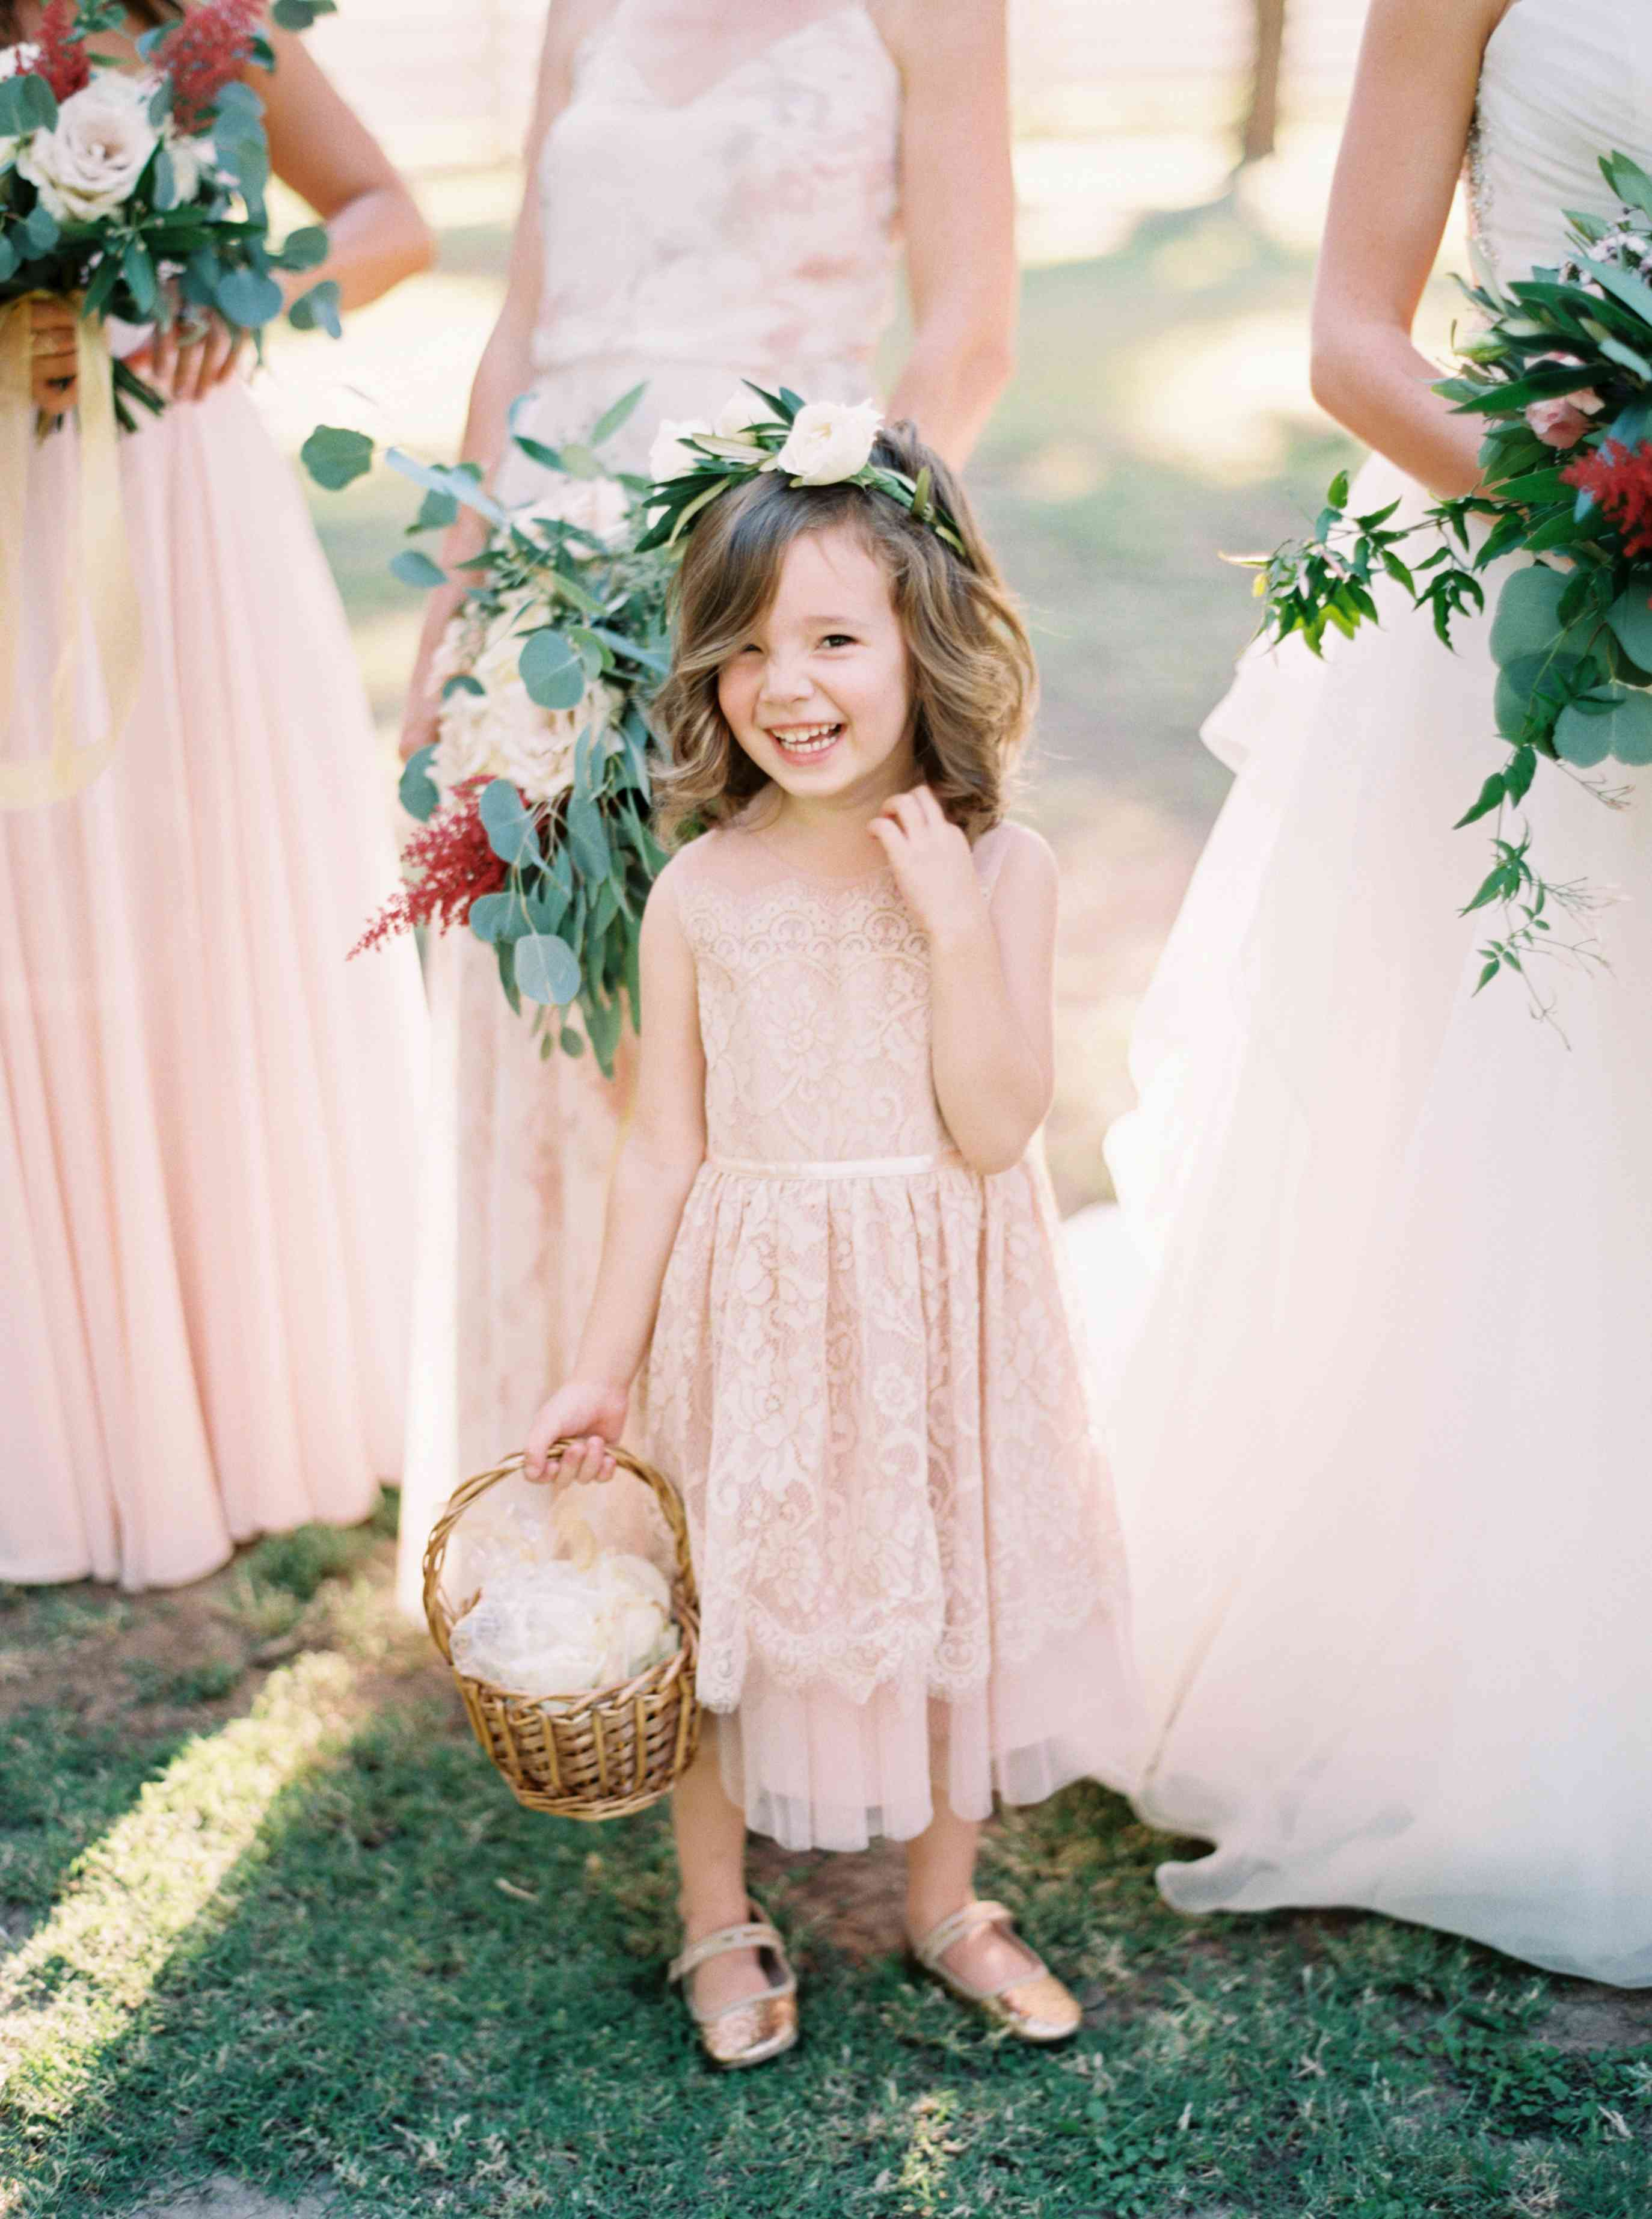 Flower girl in a pink dress with bridesmaids in pink dresses in the background